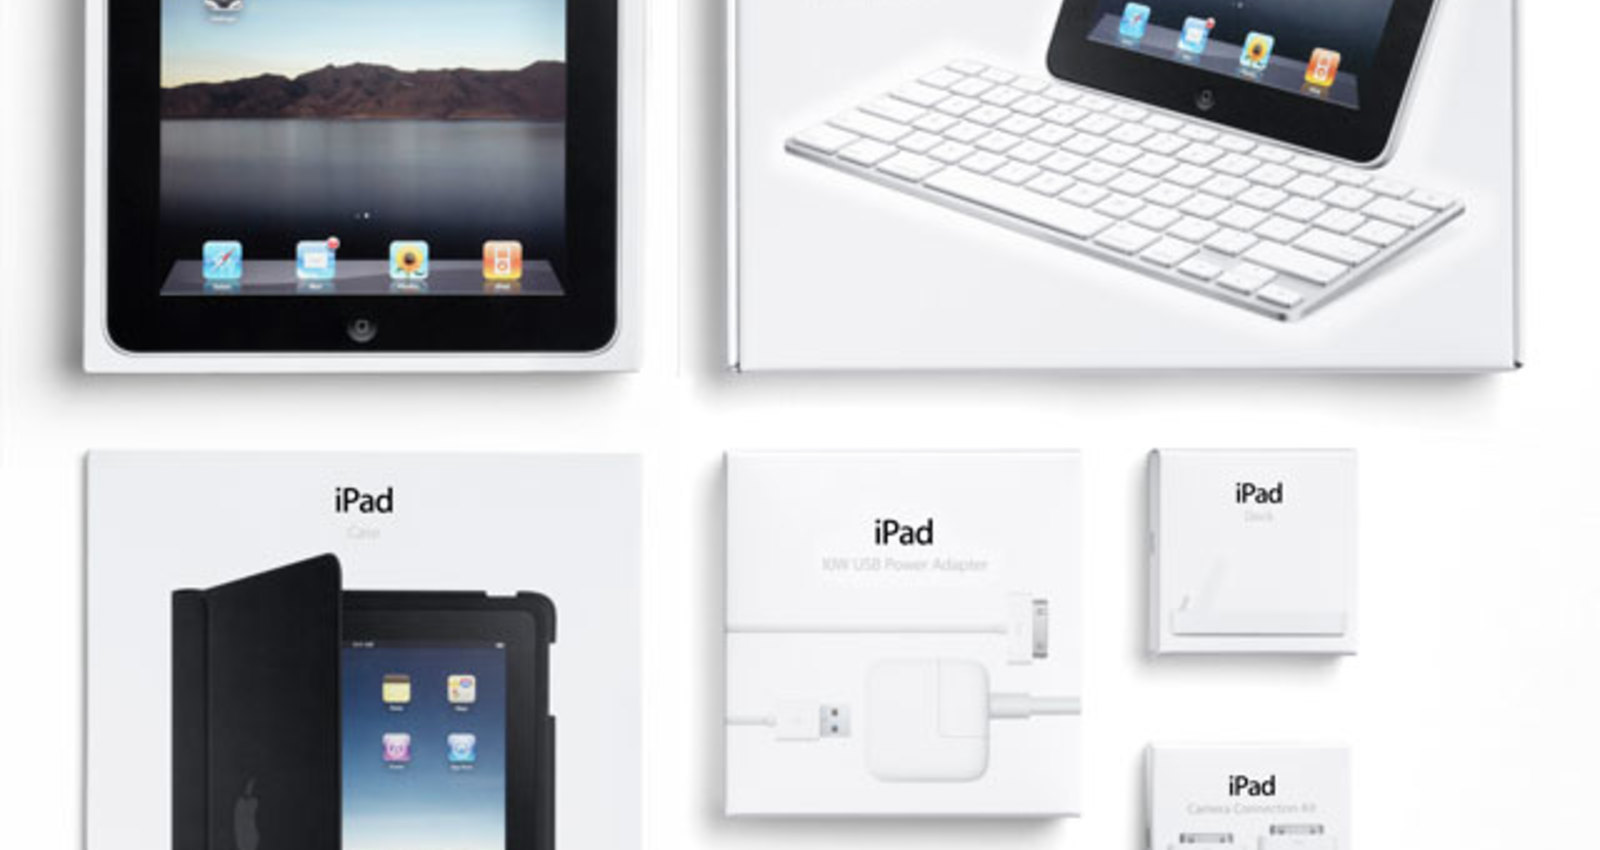 iPad and iPad Accessories Packaging